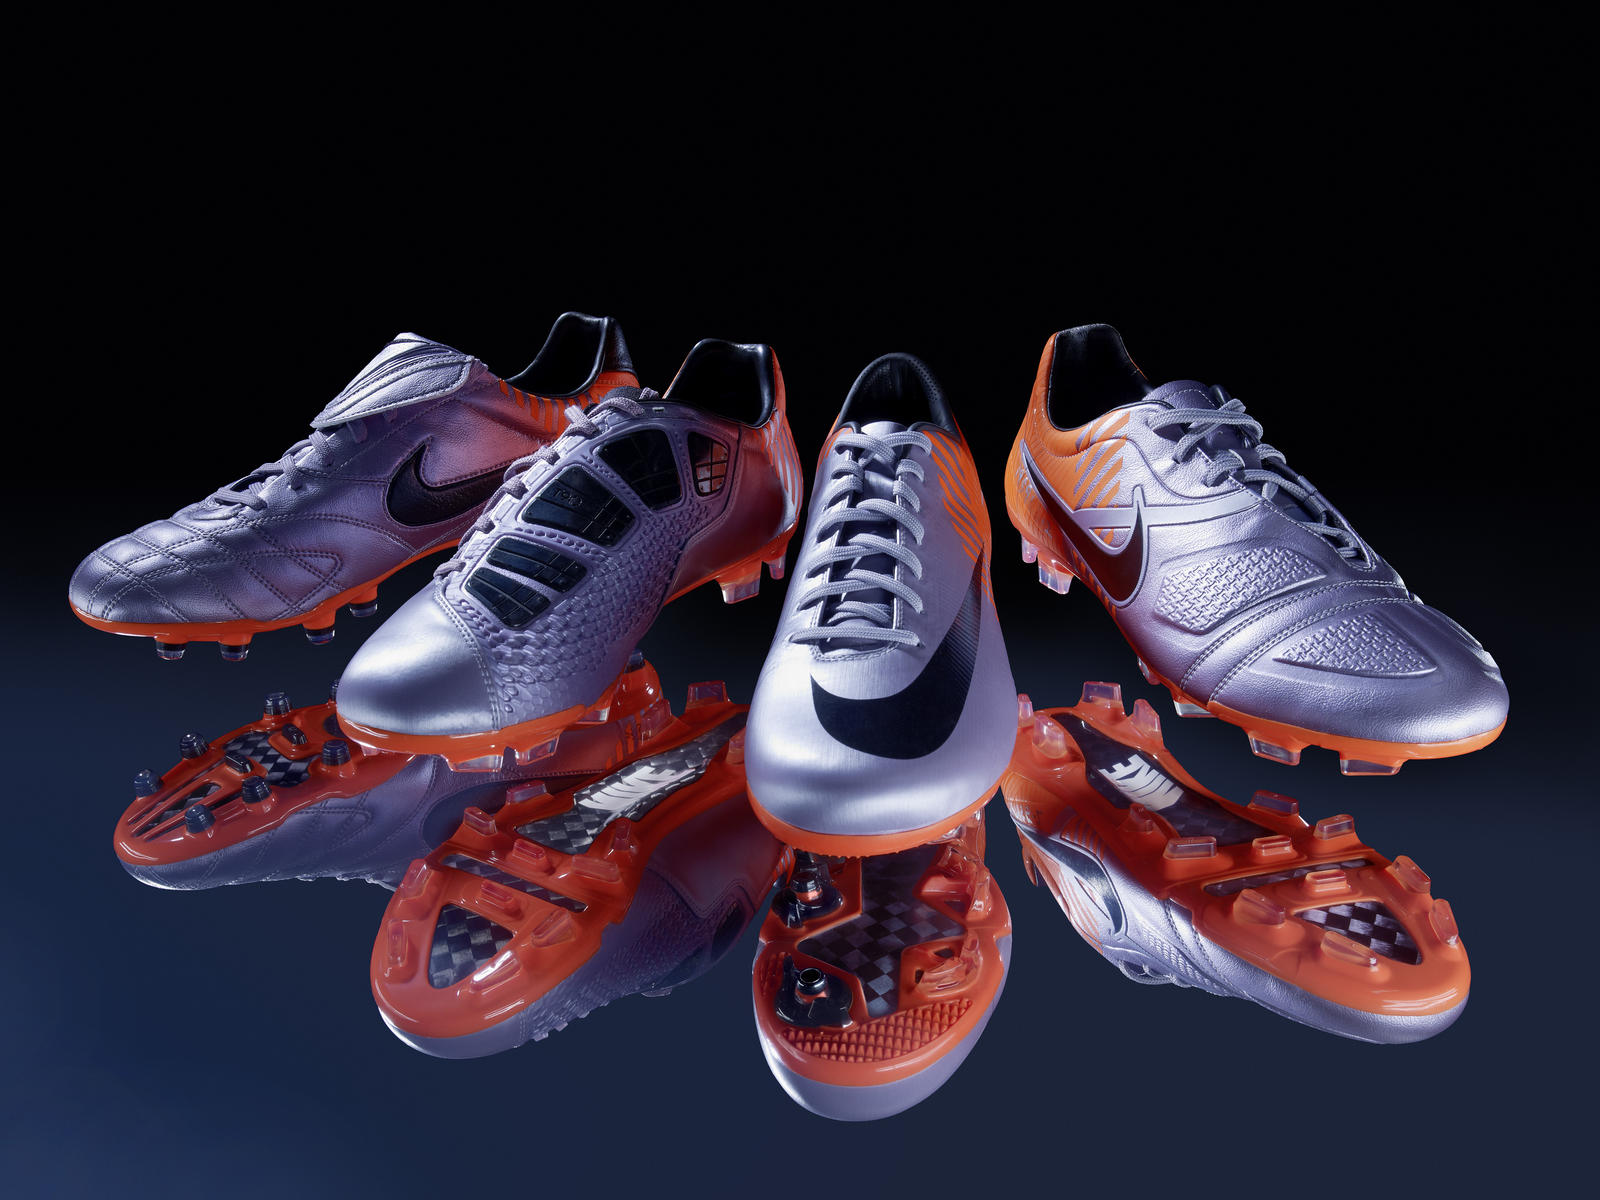 2010-nike-football-history-elite-pack